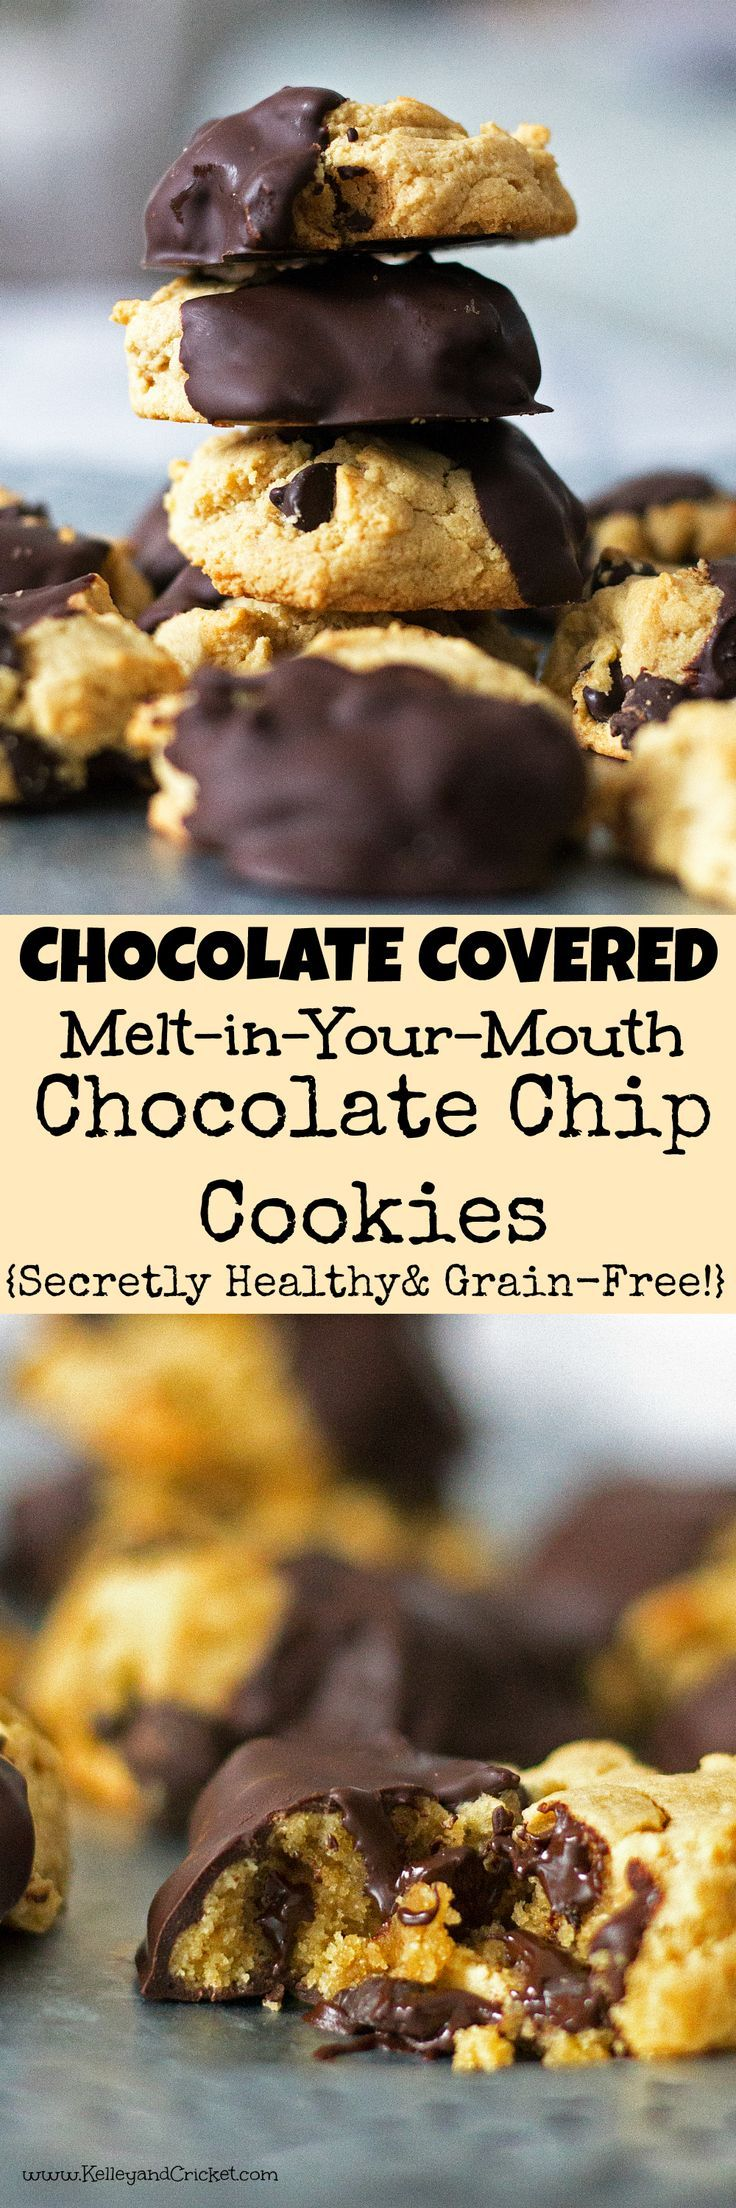 This is the my ALL TIME FAVORITE secretly healthy chocolate chip cookie recipe.These Chocolate-Dipped Chocolate Chip cookies taste like the real thing. In fact, they are so much better (and better for you)! They are soft and moist on the inside thanks to a combination of ingredients that allow them to stay plump and thick. They melt right in your mouth! The best part is that they are dipped in chocolate, because the only thing better than a chocolate chip cookie is a chocolate chip cookie…